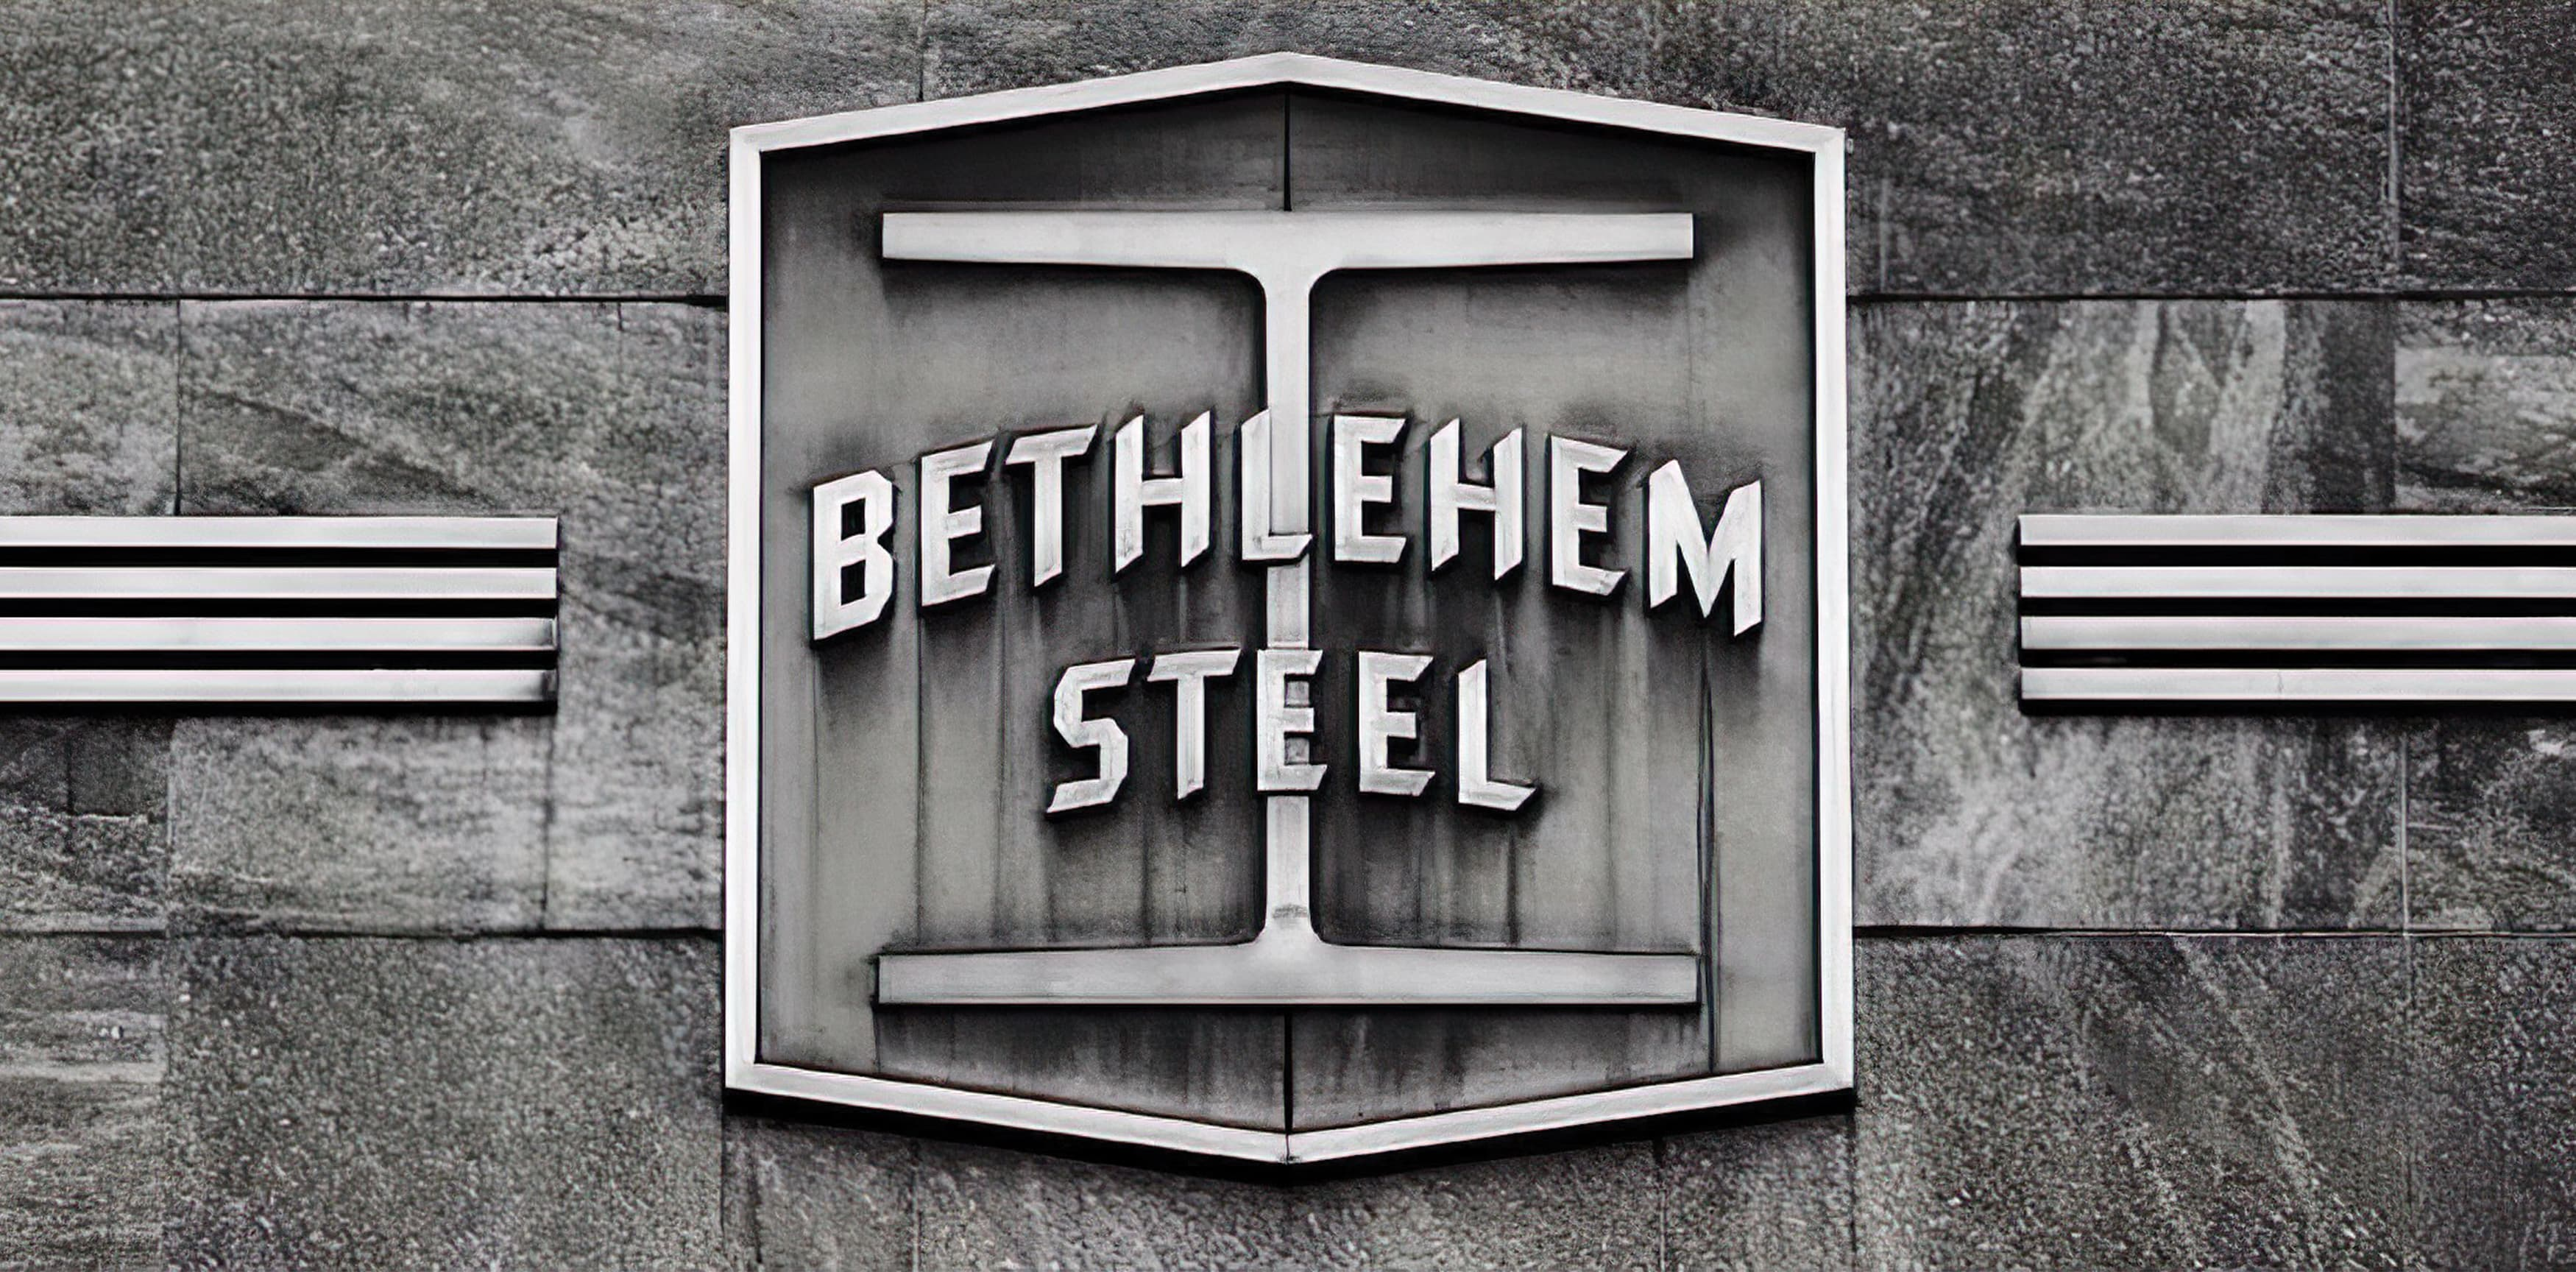 A Bethlehem Steel icon hearkening back to the history of the site for the Sands Casino Resort in Bethlehem, PA.